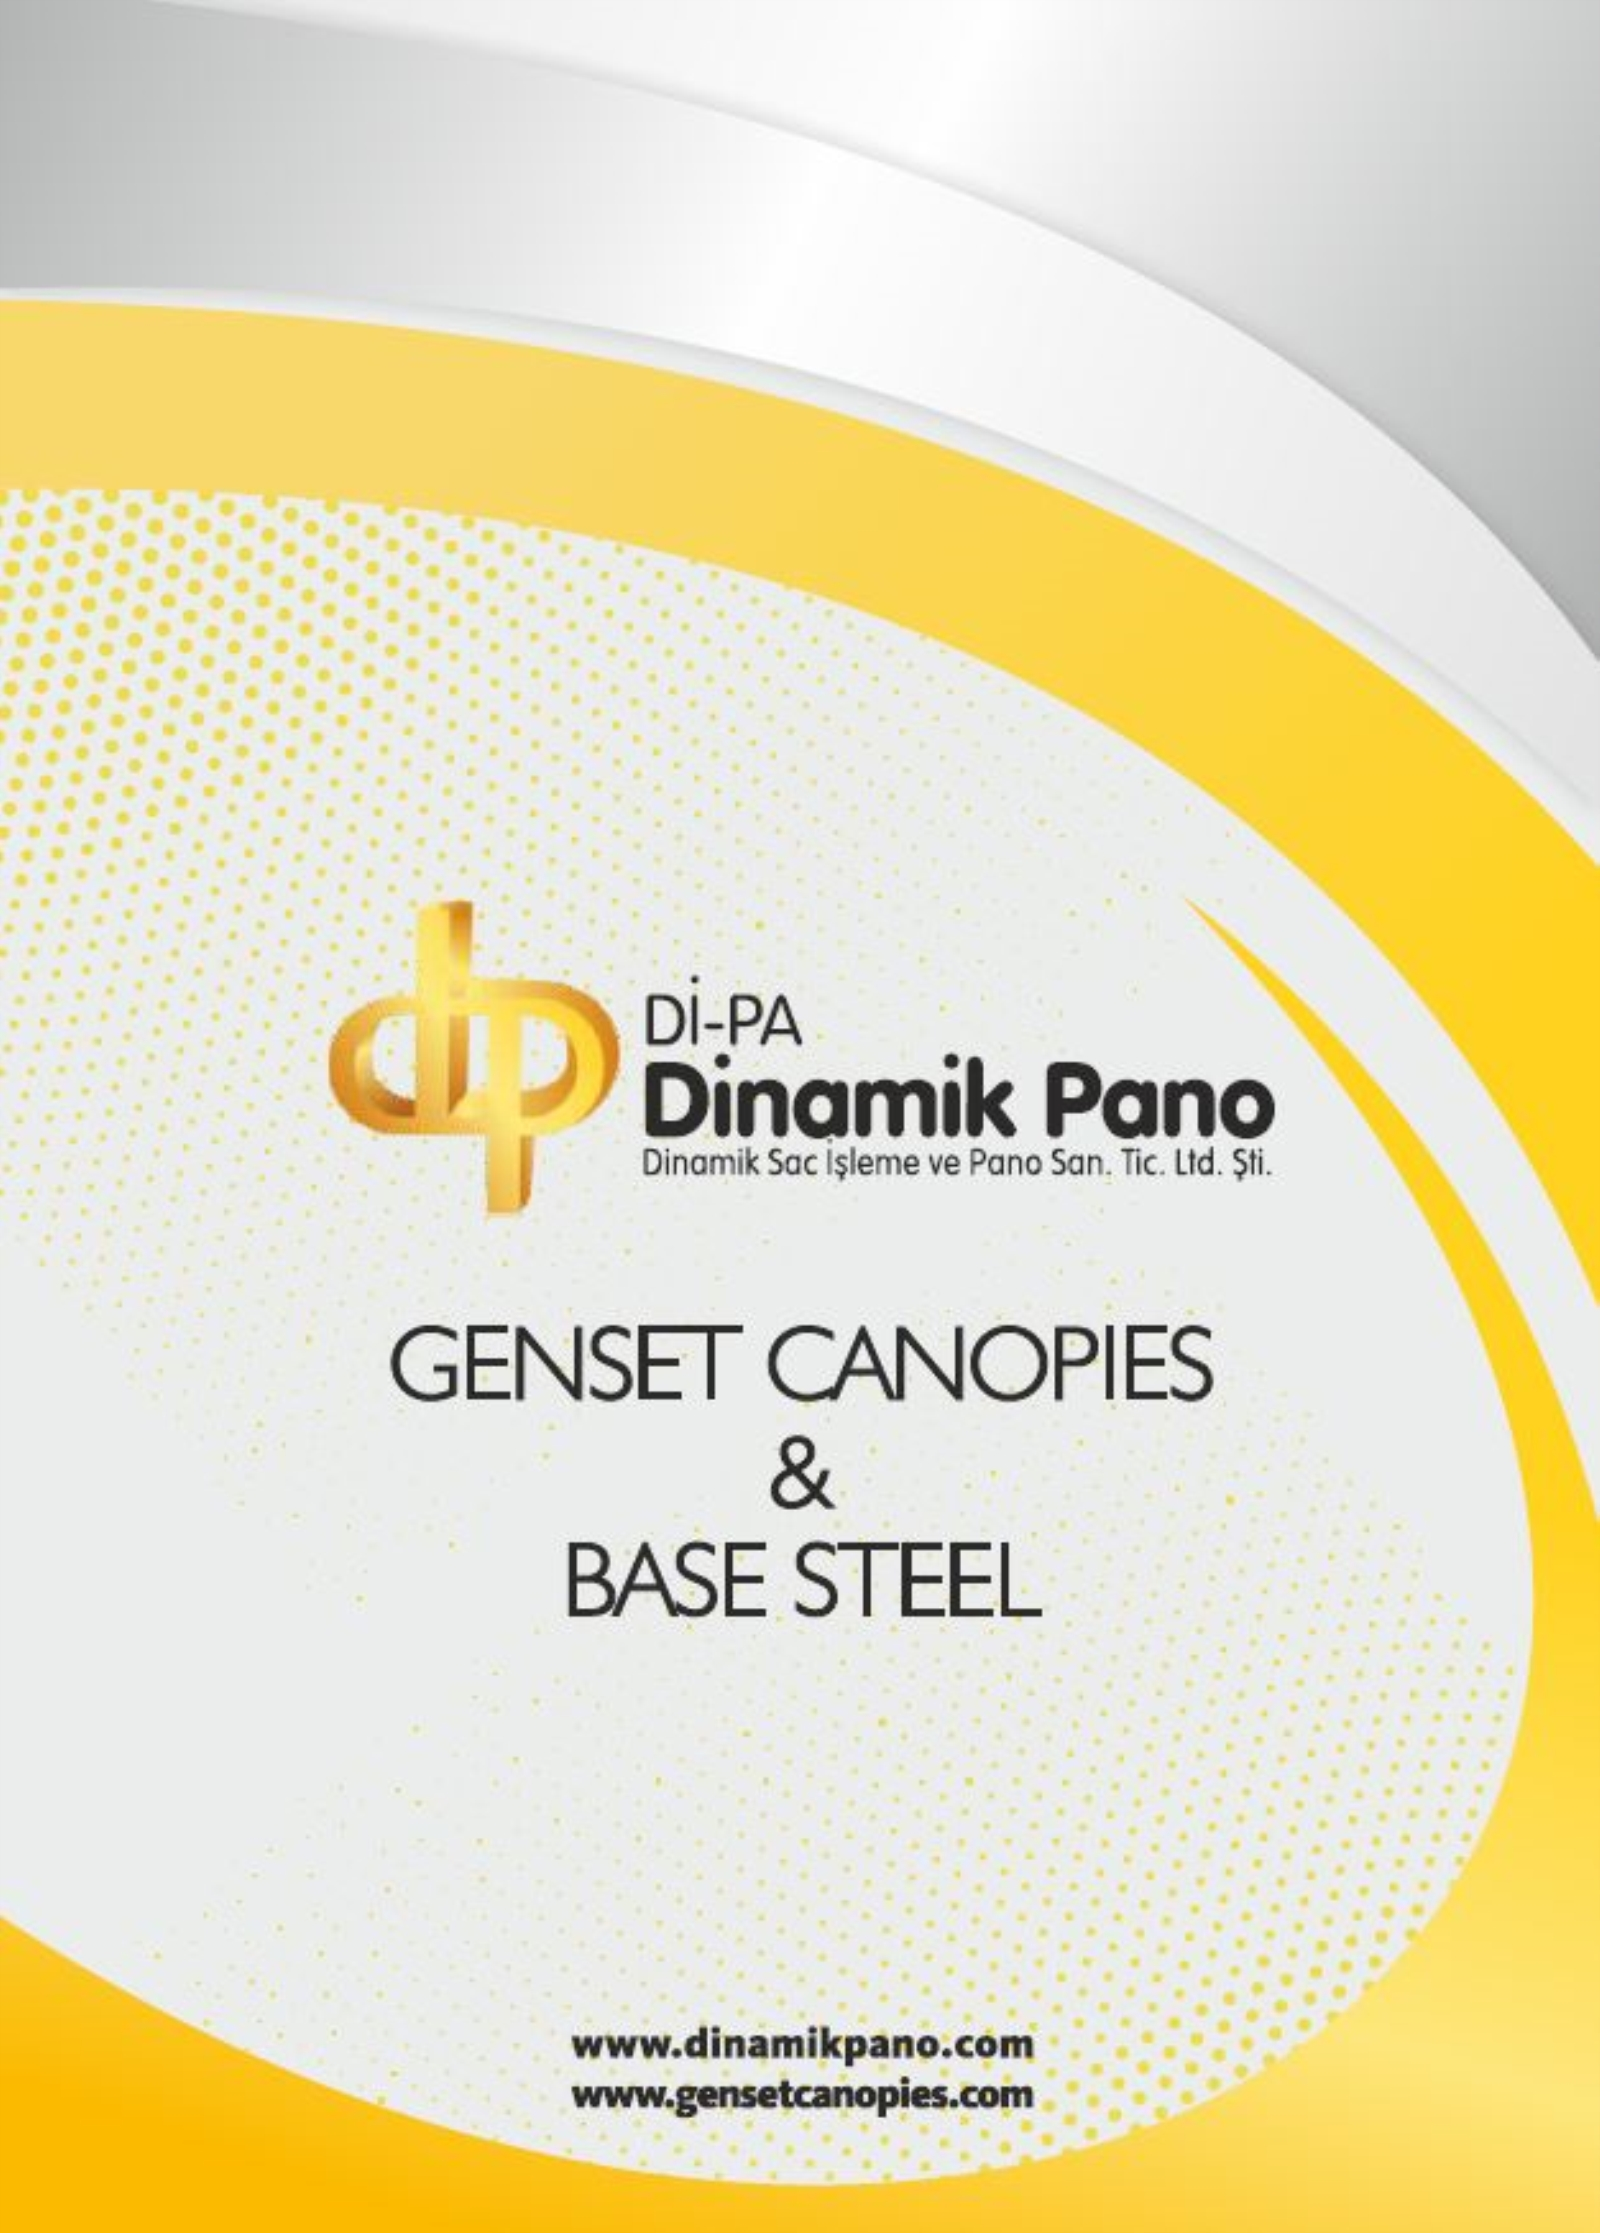 Genset Canopies  & Base Steel